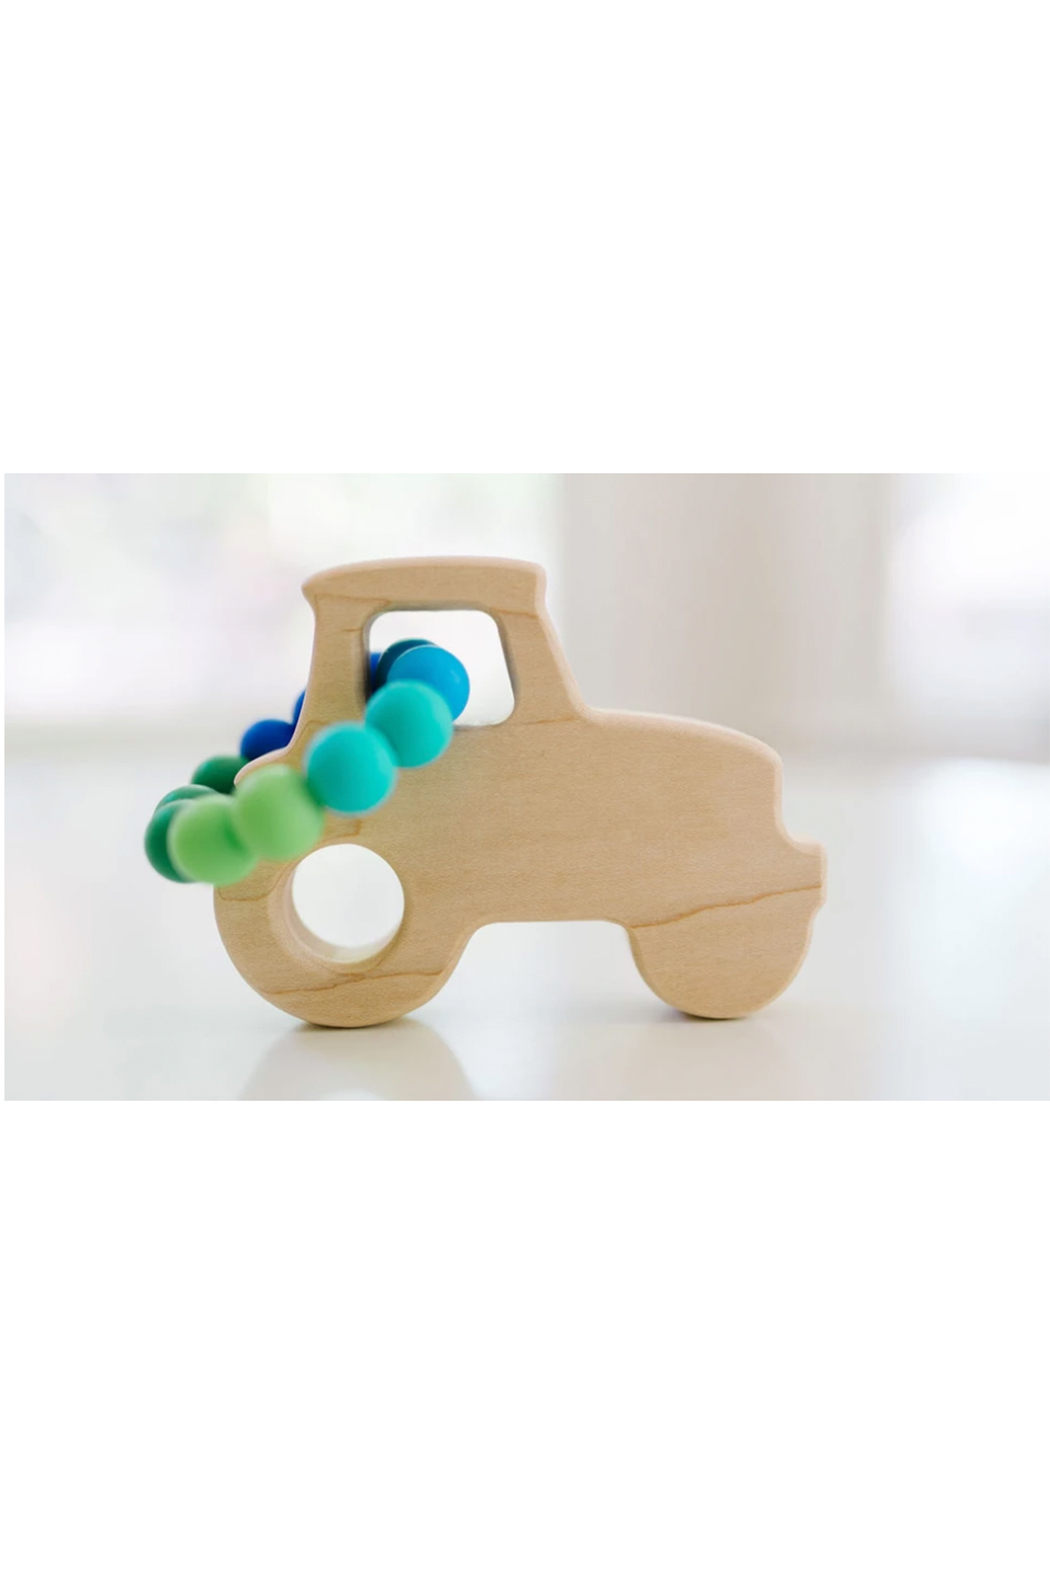 Bannor Toys  Tractor Wooden Grasping Toy - Main Image